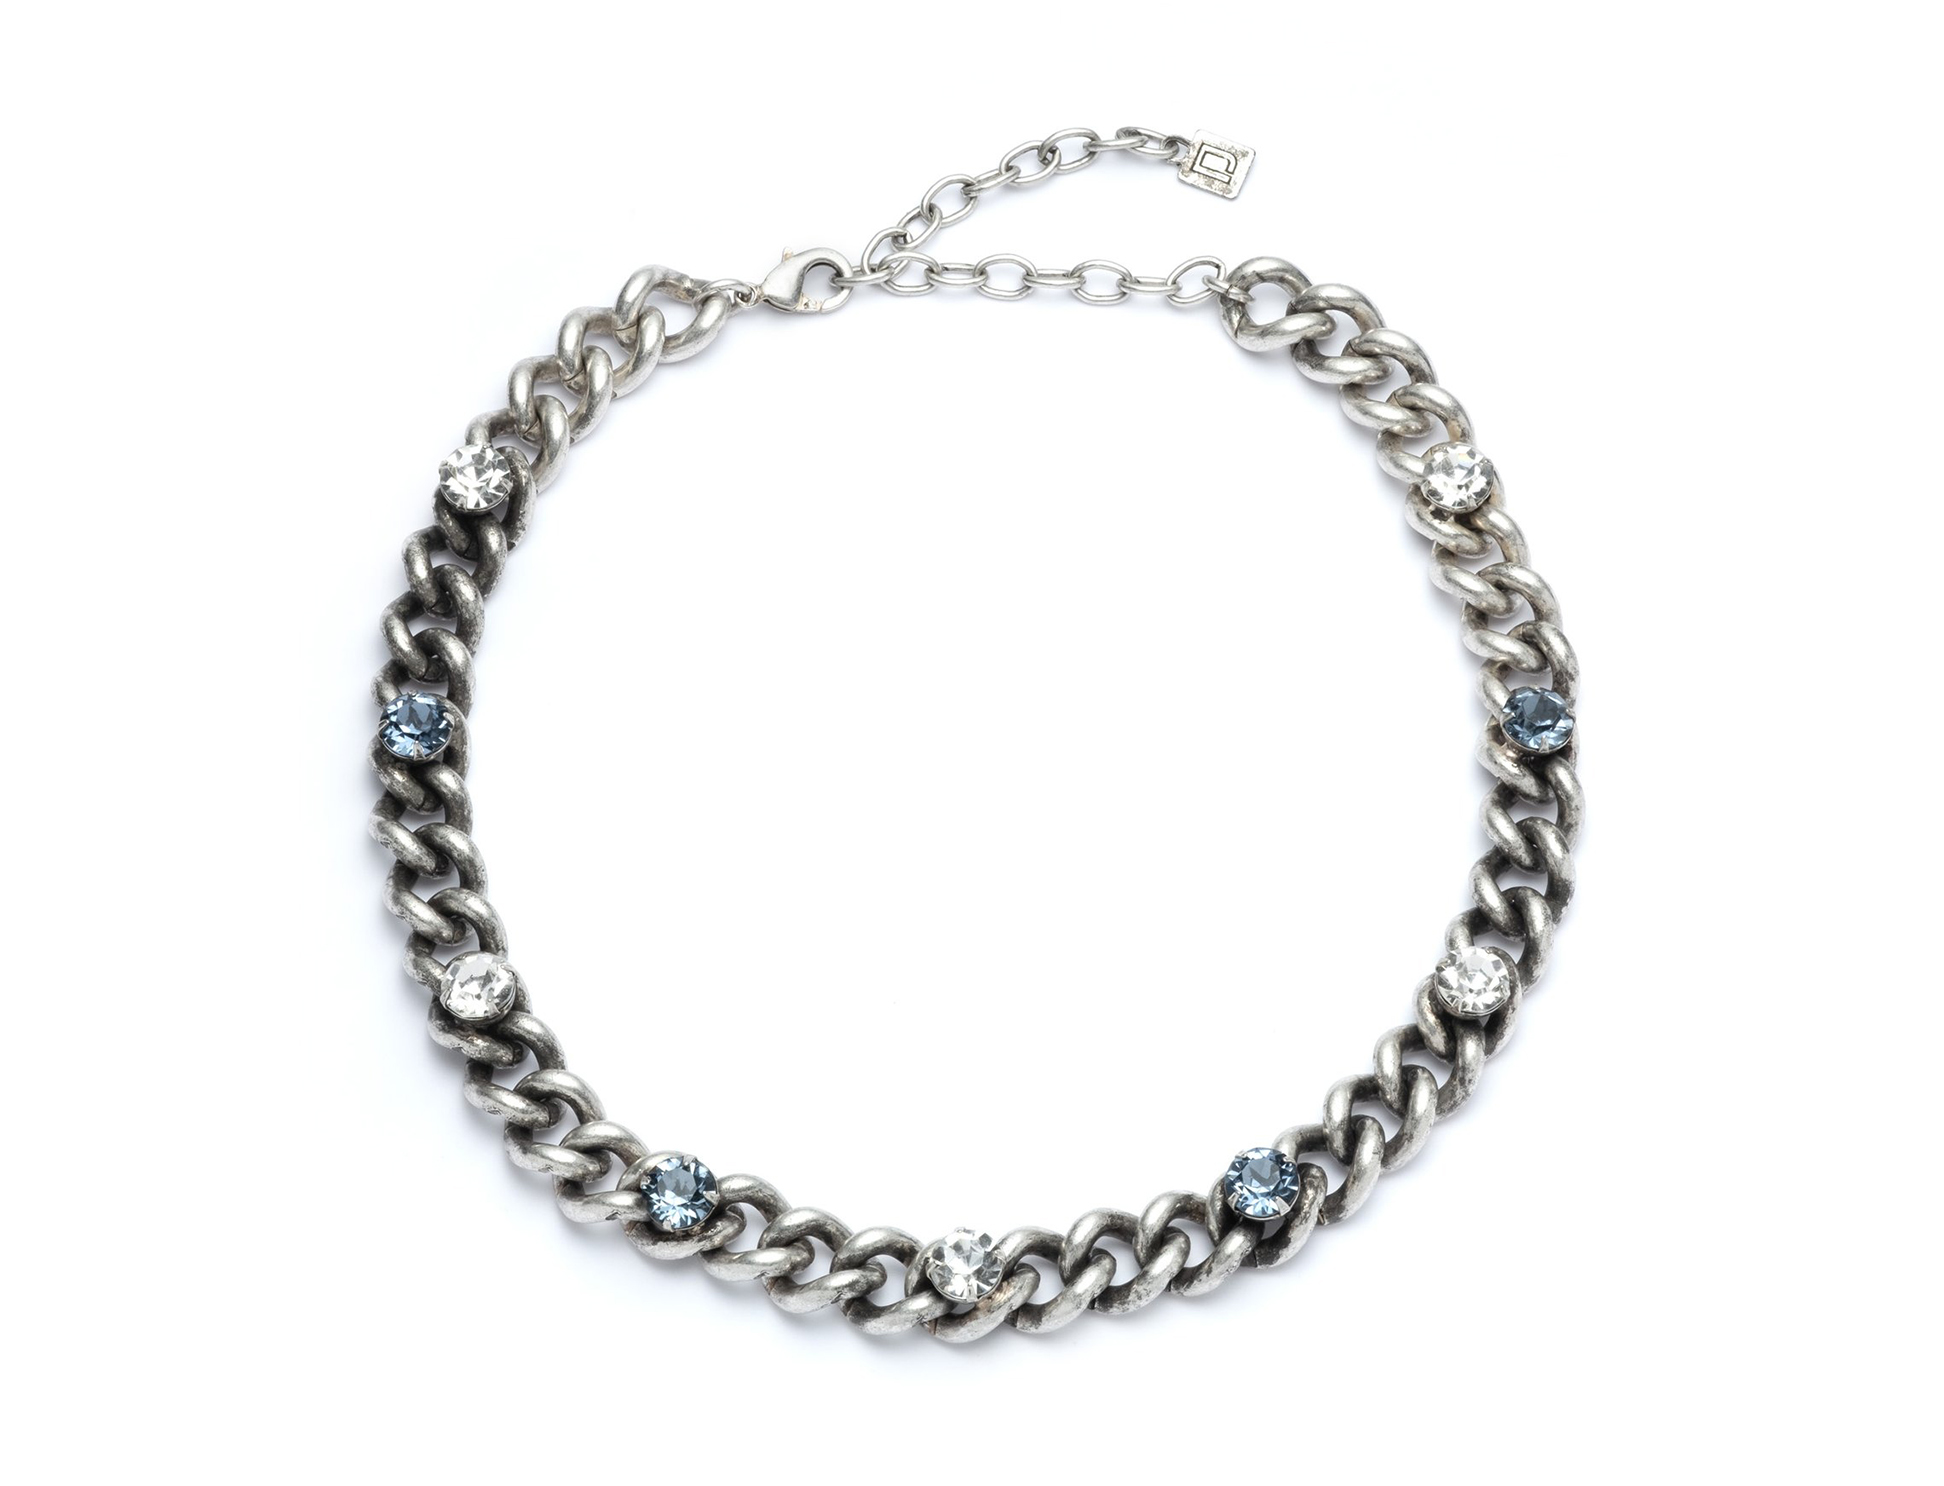 CHELLIE NECKLACE